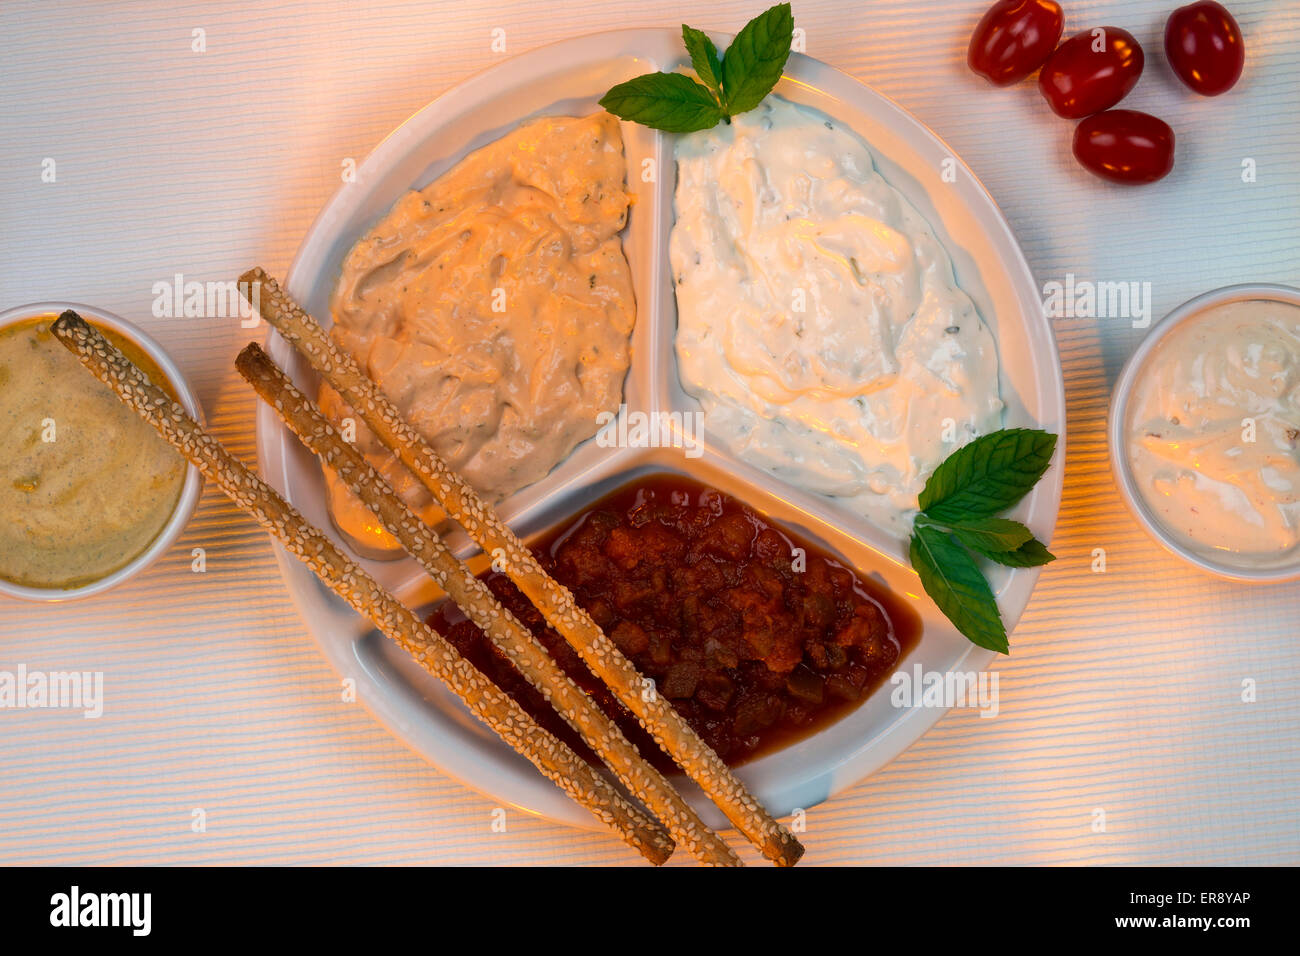 A selection of party dips with bread sticks and other crudites. - Stock Image